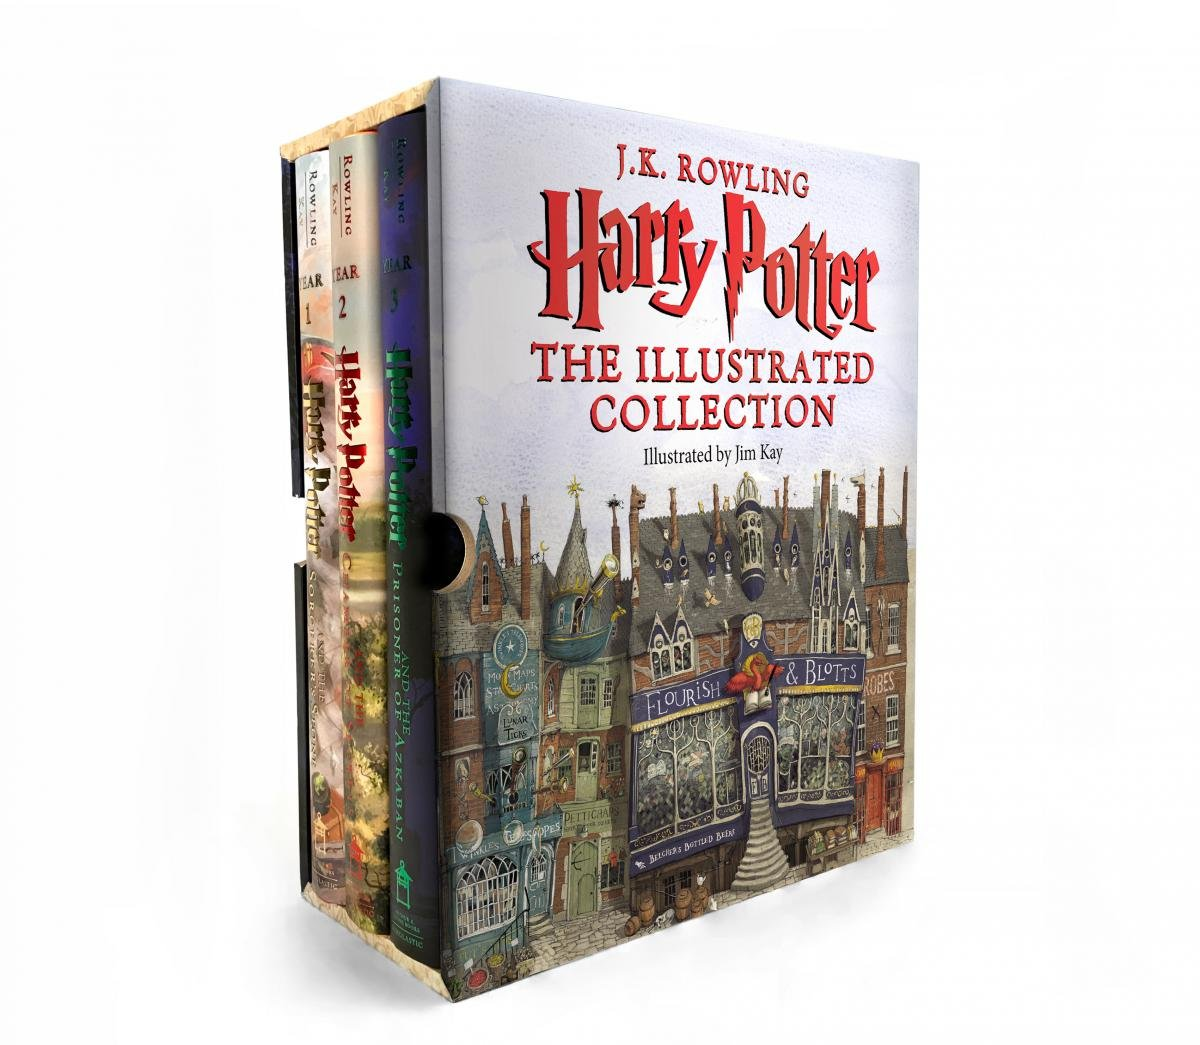 Harry Potter: The Illustrated Collection (Books 1-3 Boxed Set) by Arthur A. Levine Books (Image #1)